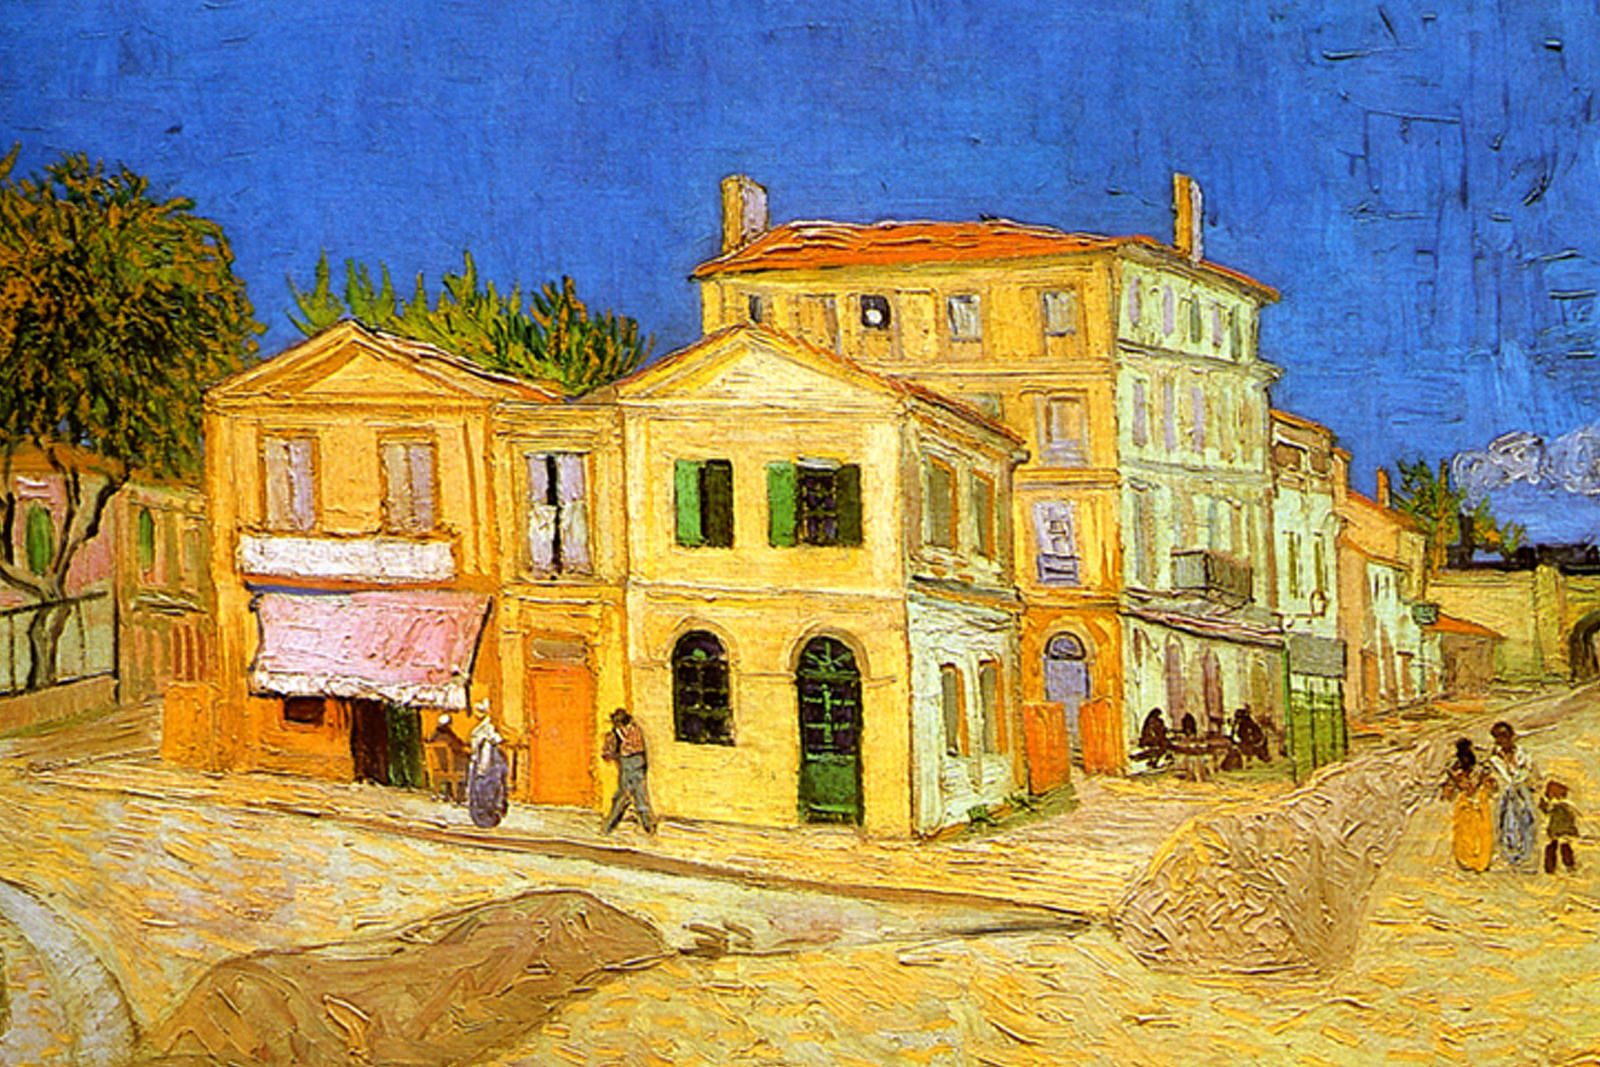 Vincent van Gogh's 'Yellow House' - painted